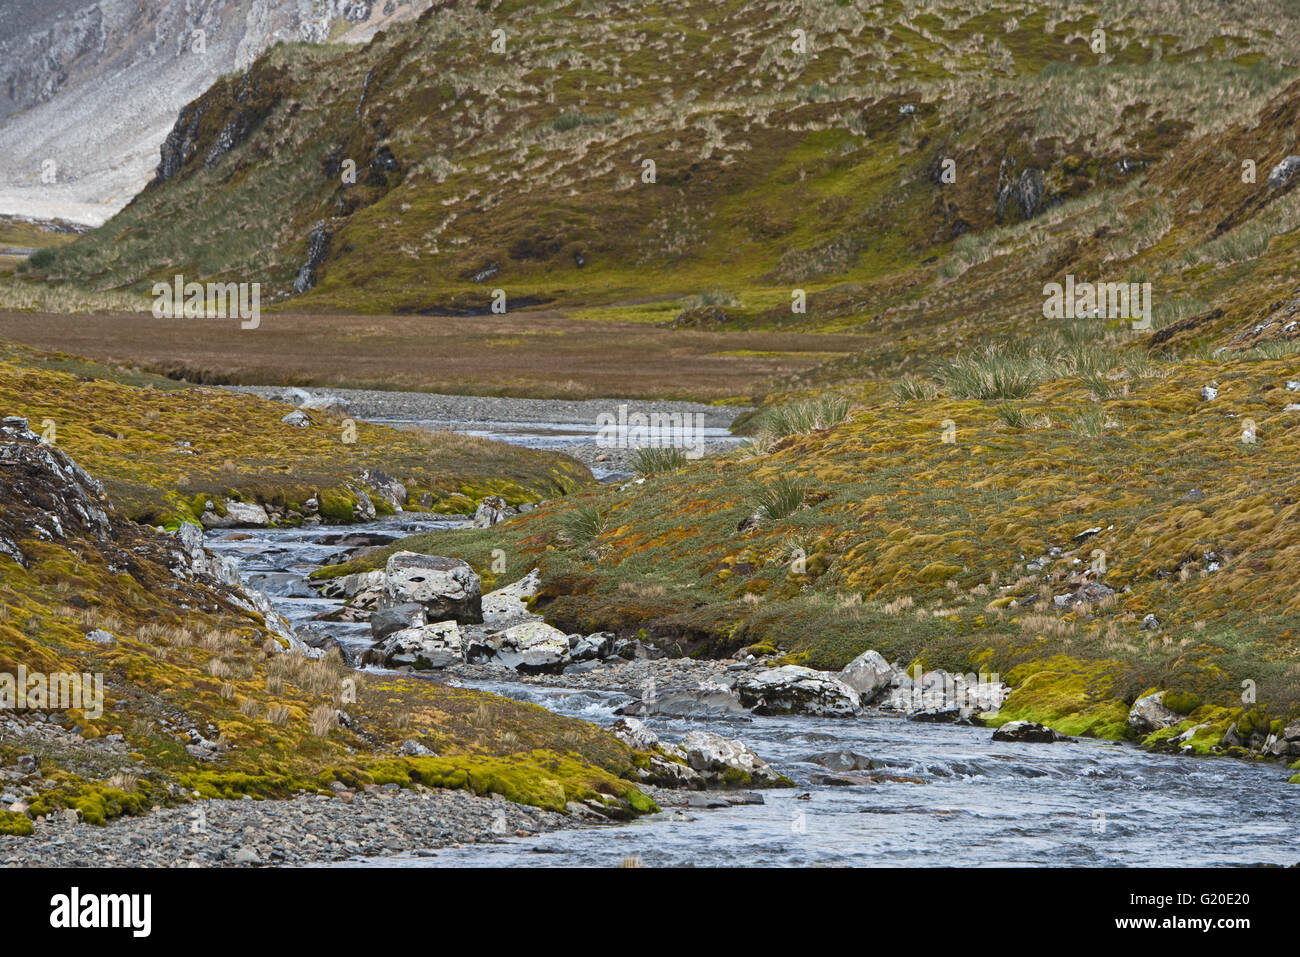 Stream & valley near Coal Harbour, South Georgia January Stock Photo